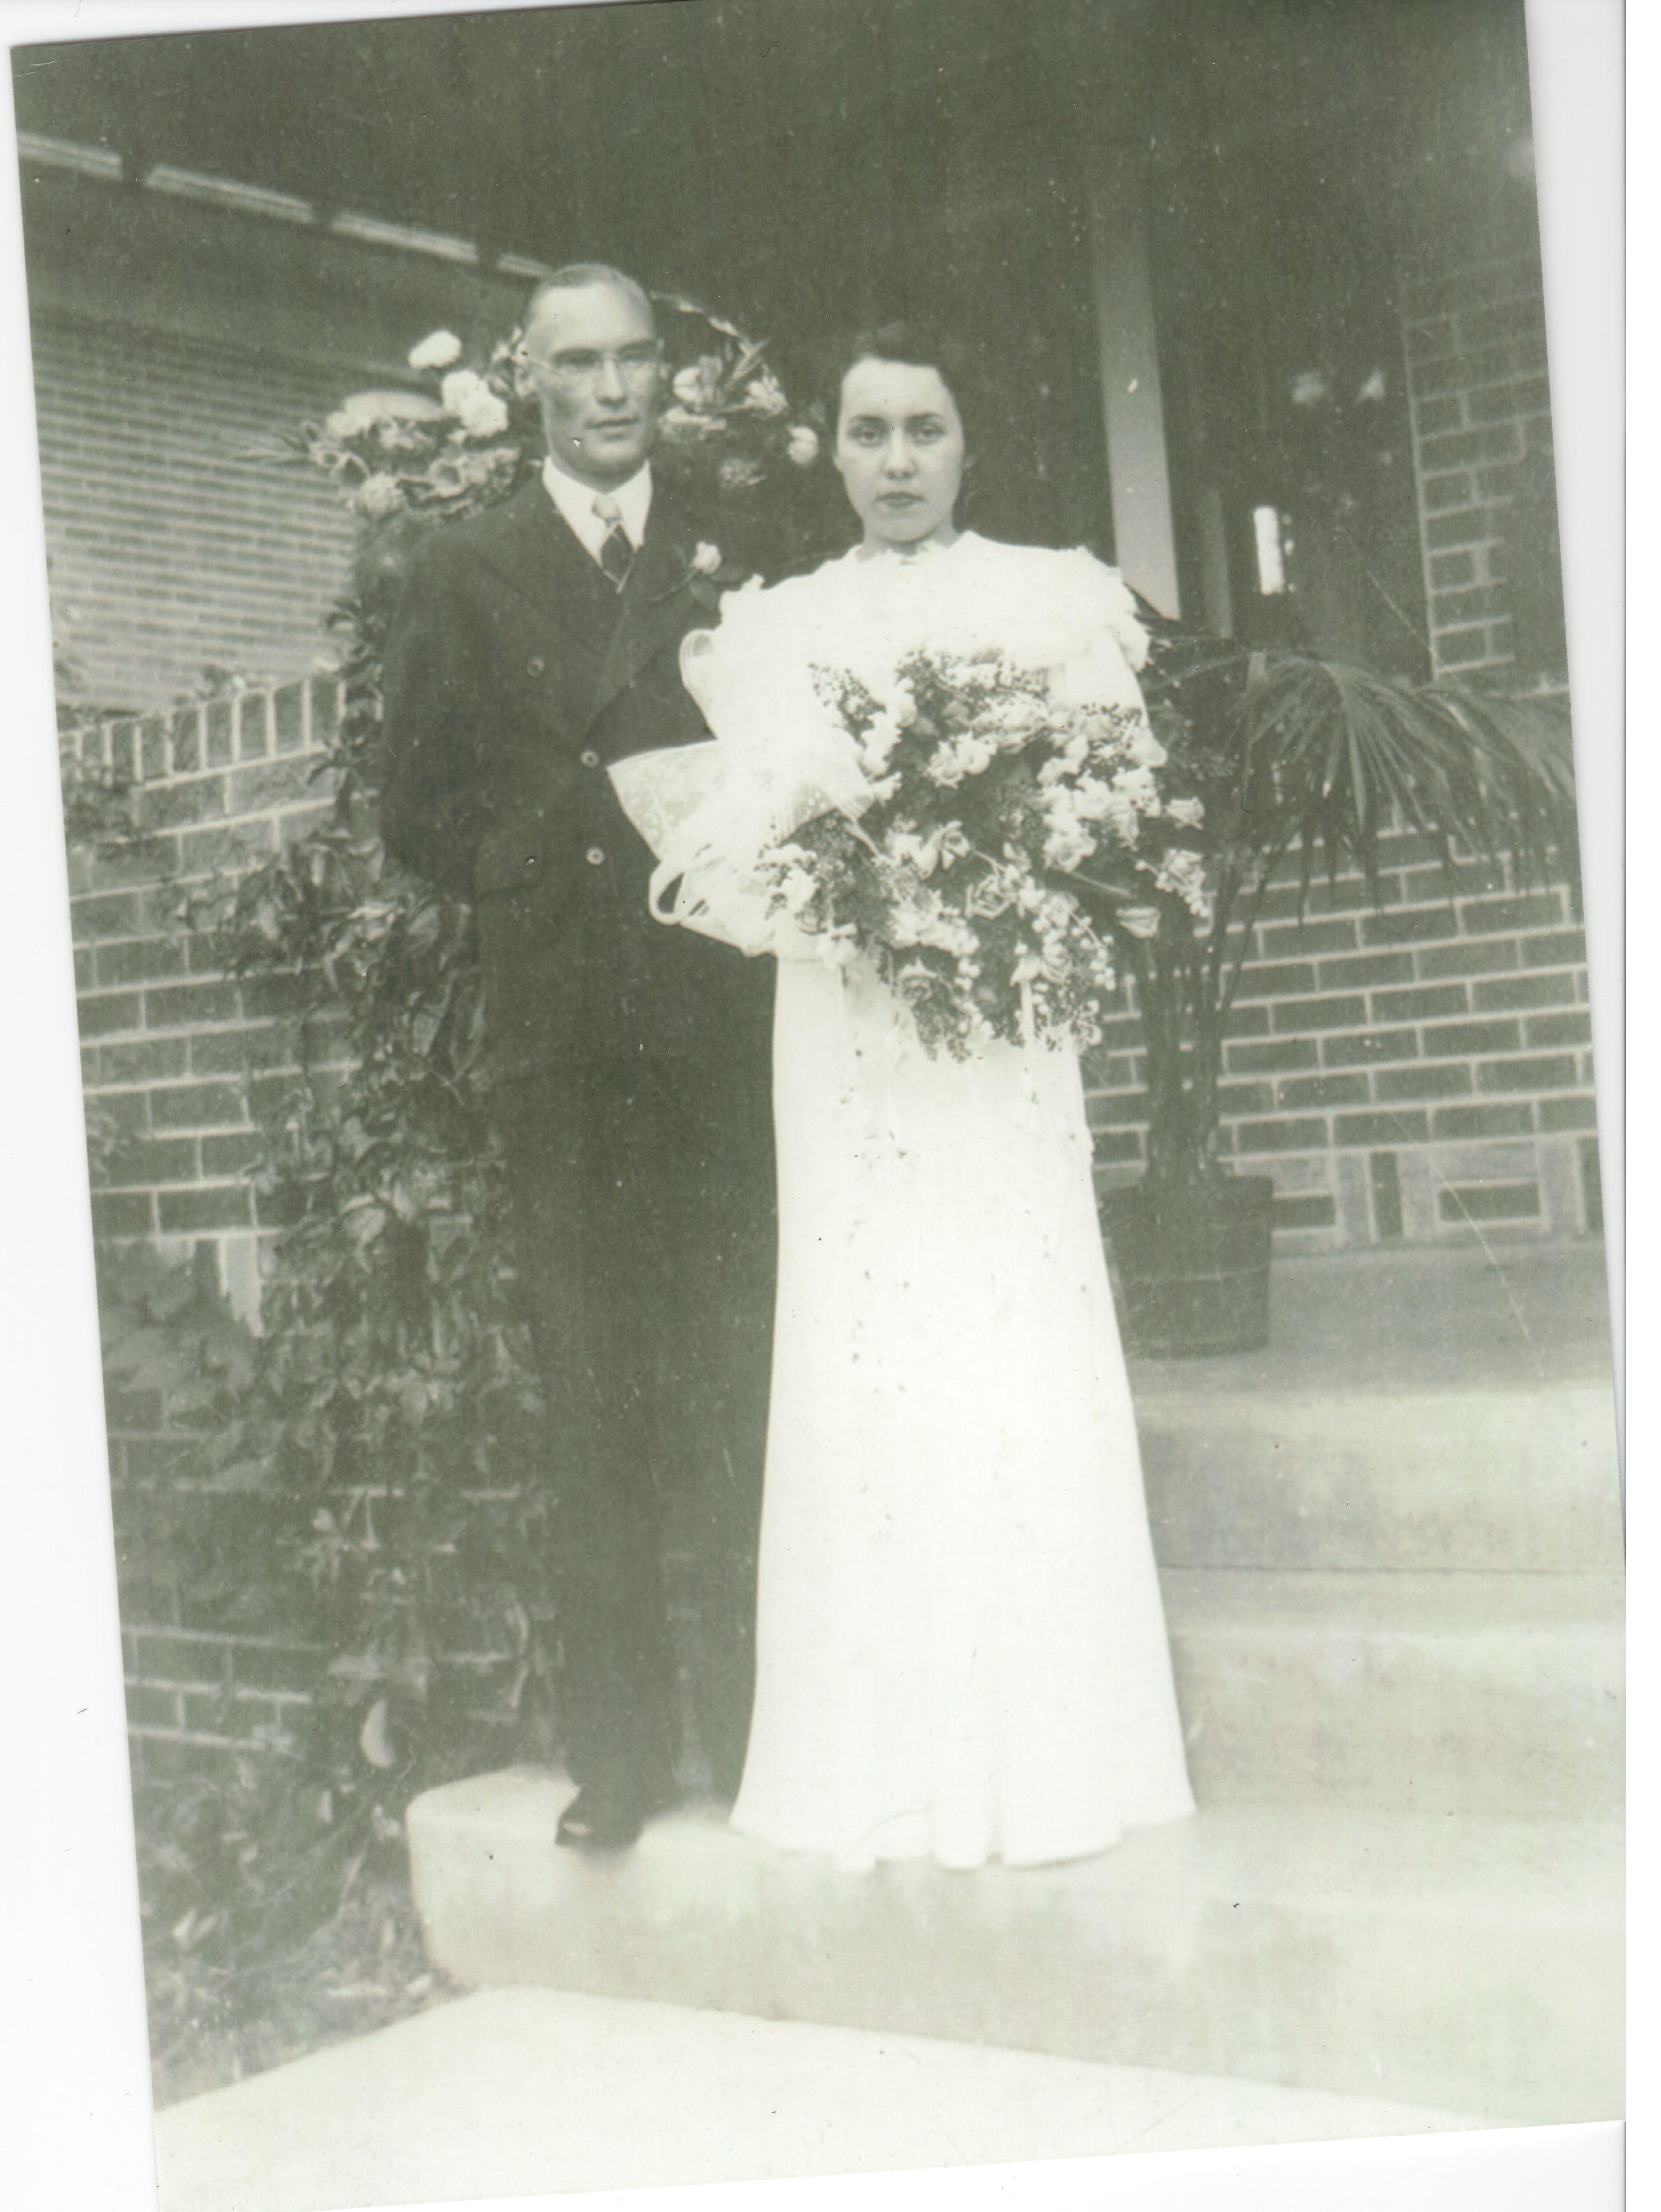 Mildred France and Lawrence Schuerman wedding